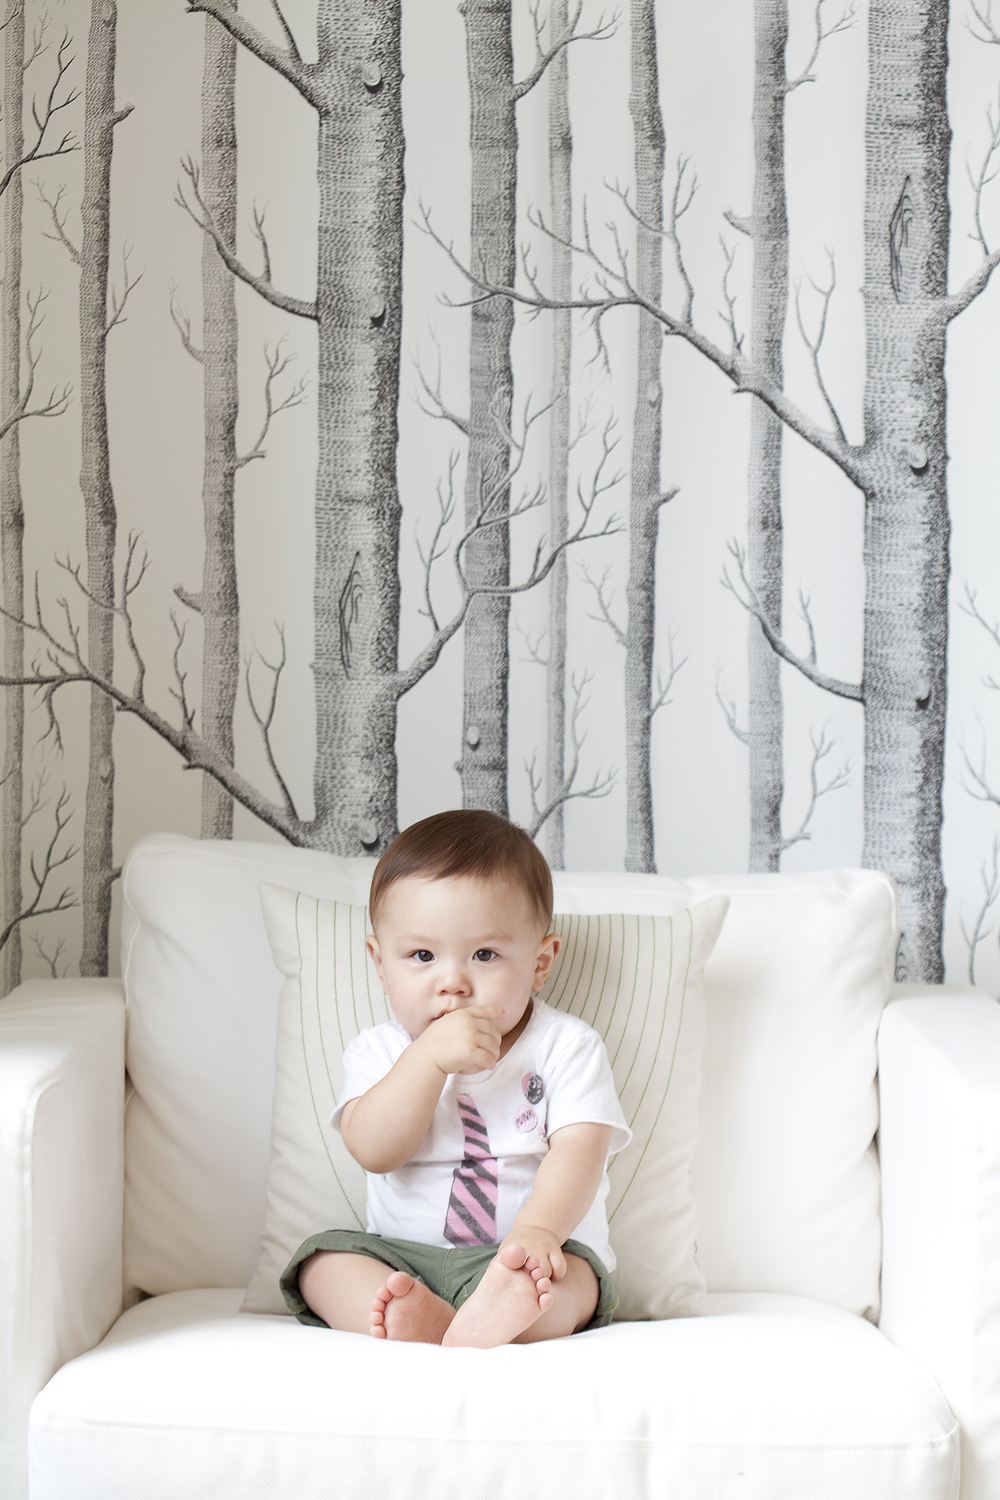 lifestyle-editorial-children-washington-dc-malek-naz-photography-contempo-kids-woods-wallpaper.jpg